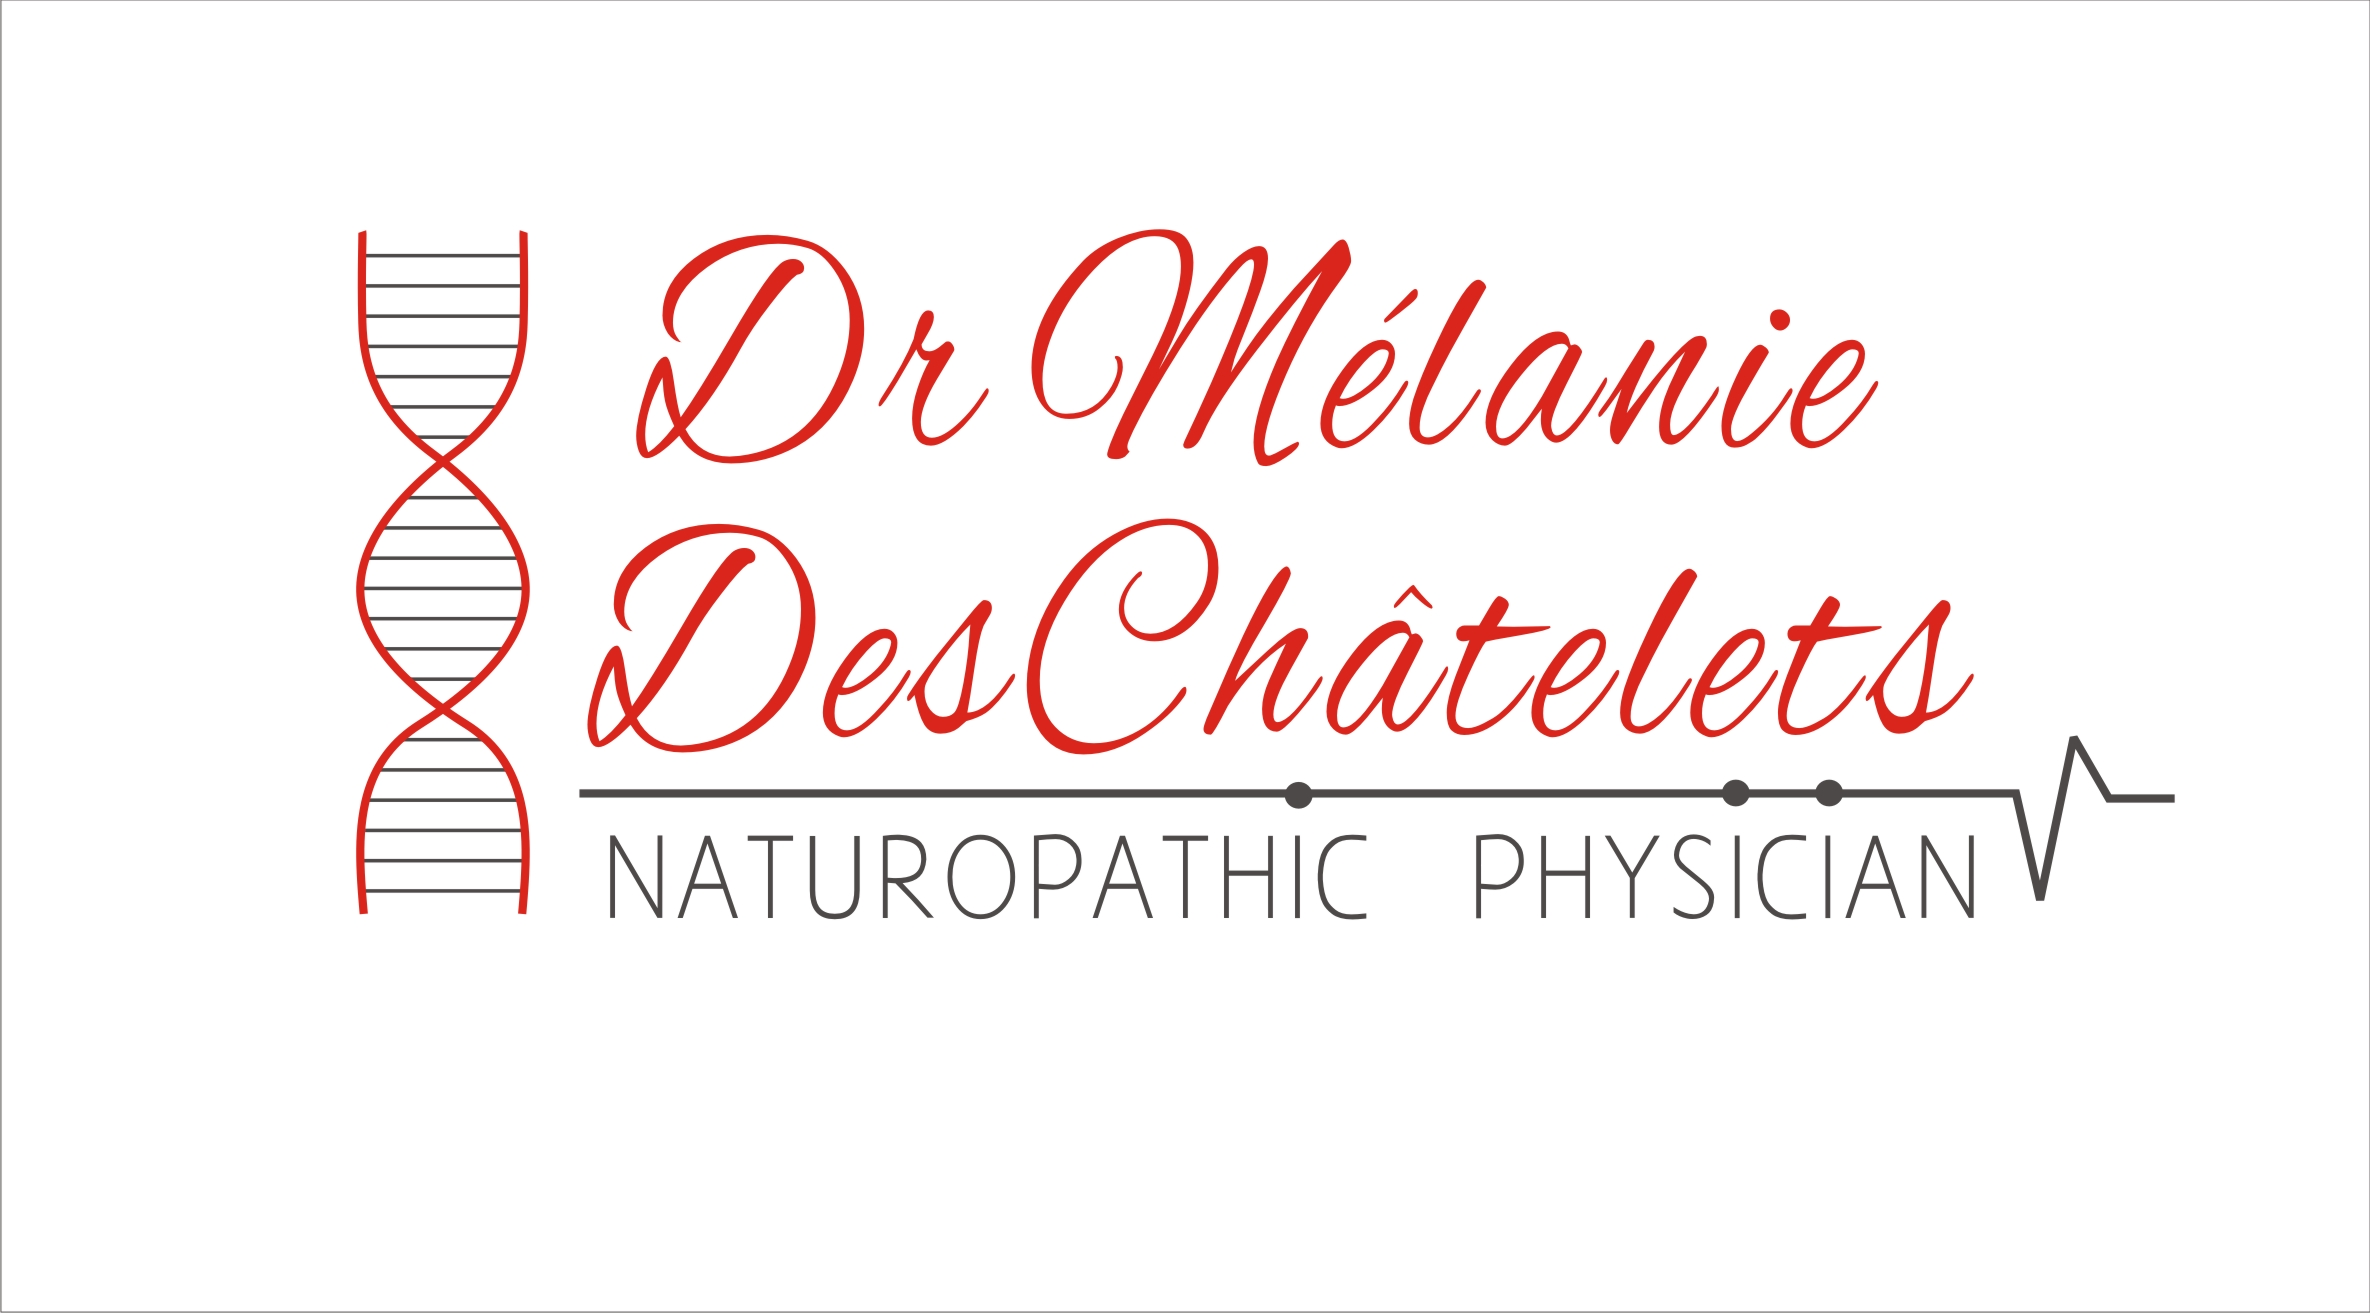 Logo Design by Sandip Kumar - Entry No. 207 in the Logo Design Contest Artistic Logo Design for Dr Mélanie DesChâtelets.